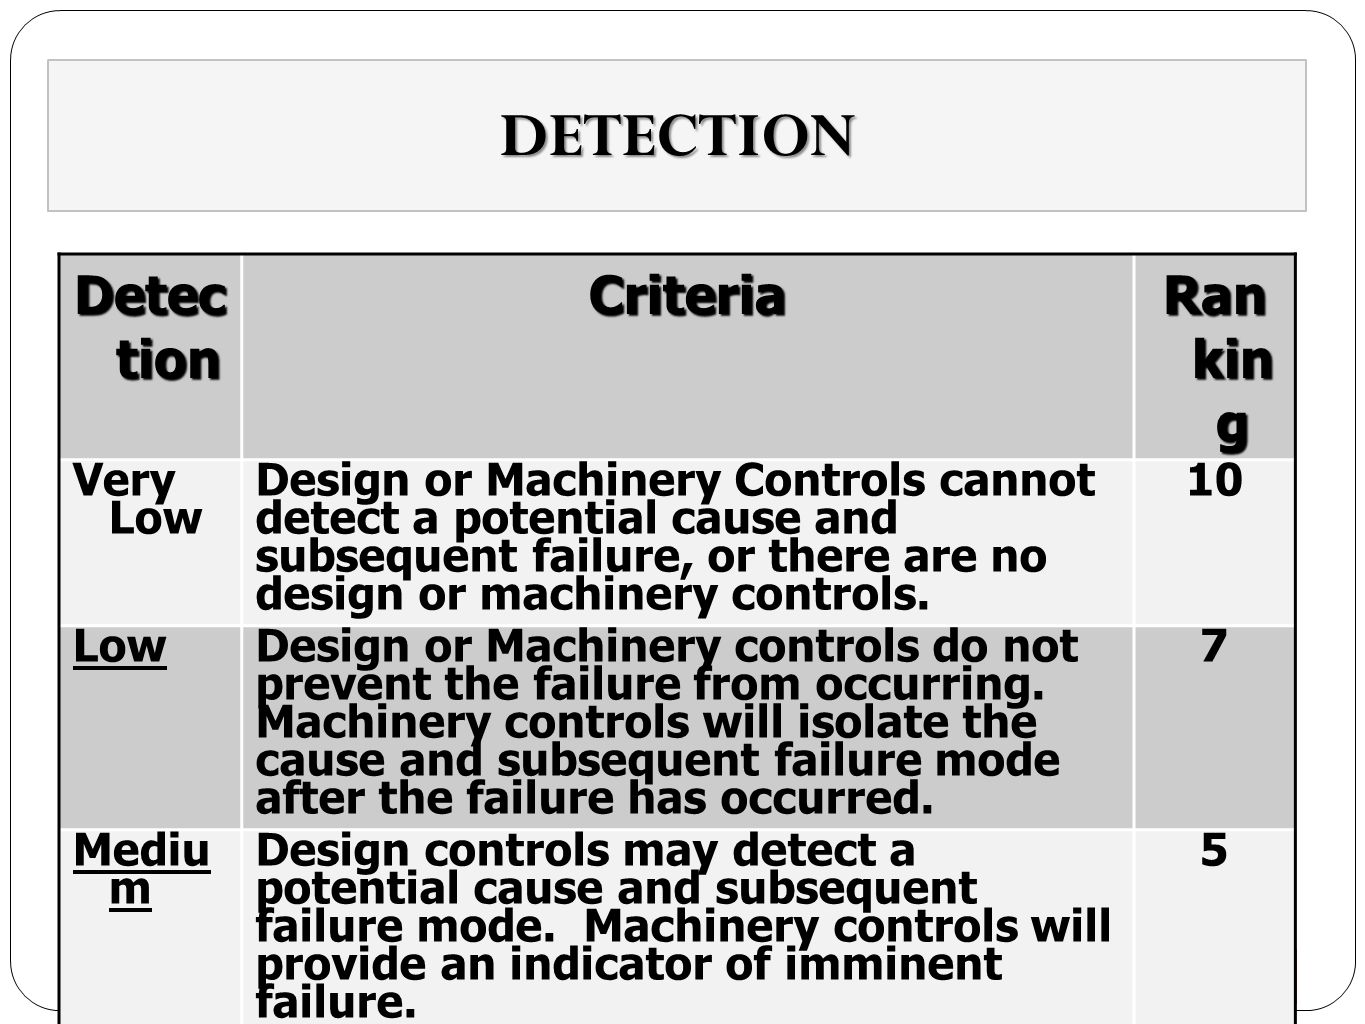 DETECTION 15 Detec tion Criteria Ran kin g Very Low Design or Machinery Controls cannot detect a potential cause and subsequent failure, or there are